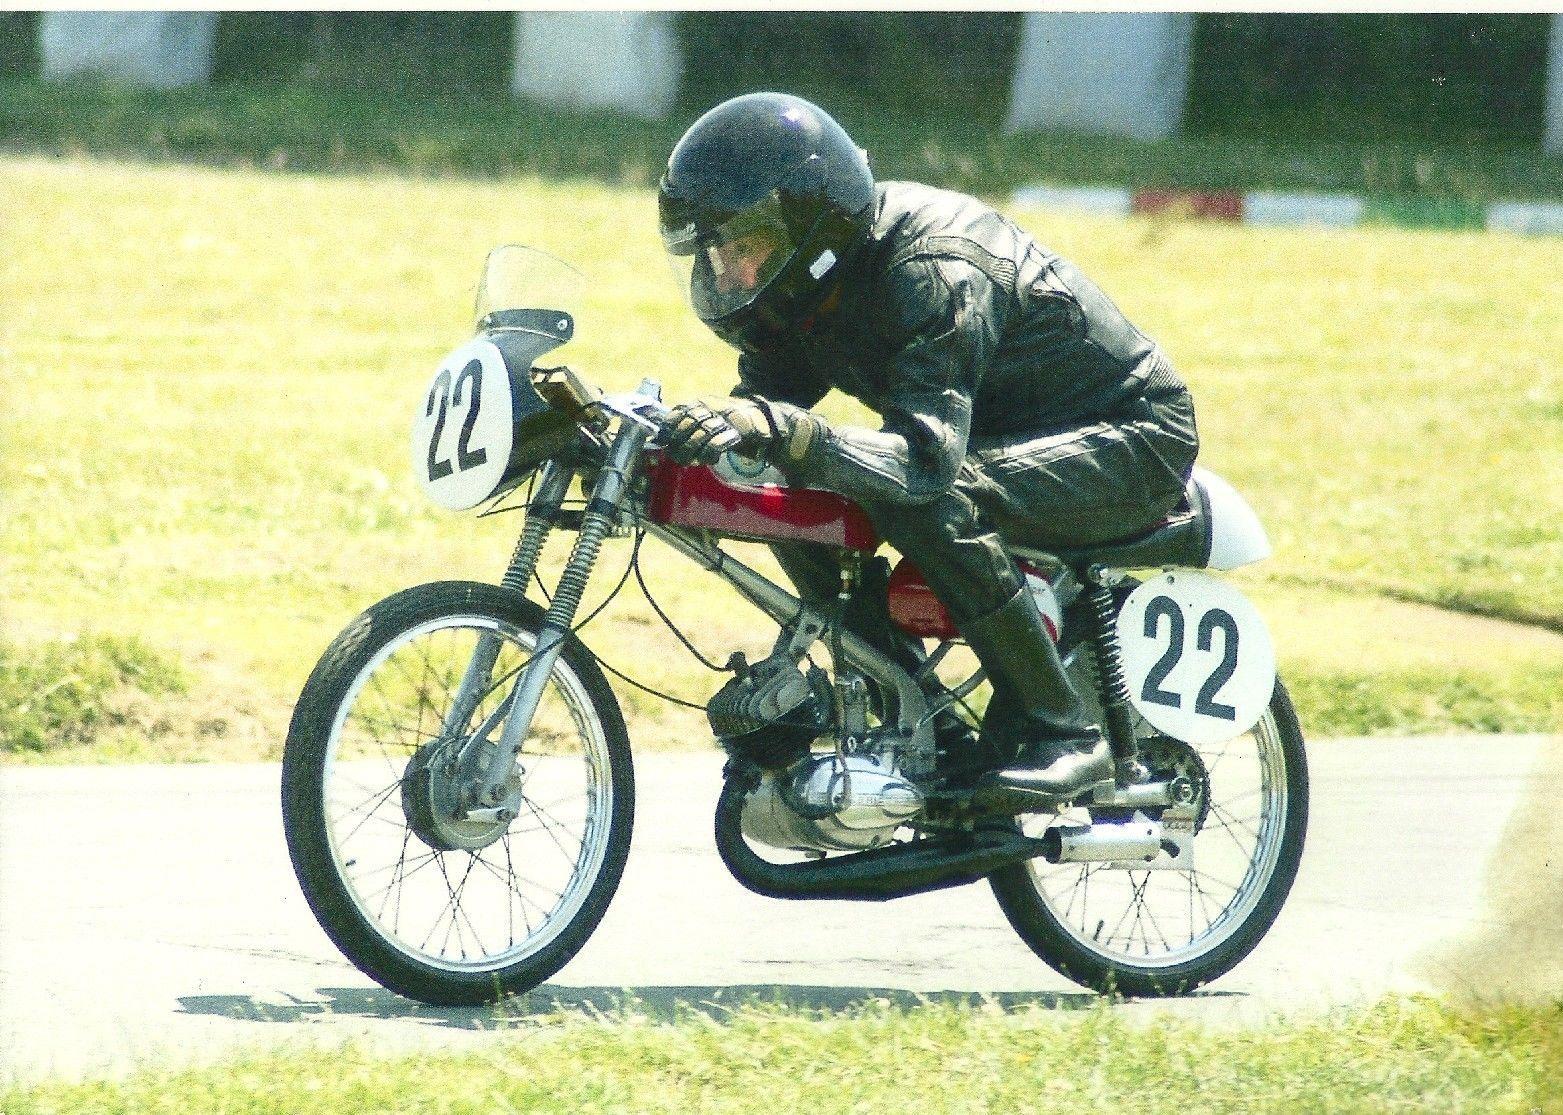 Derbi Gran Sport Classic 50cc Racing Motorcycle Picture